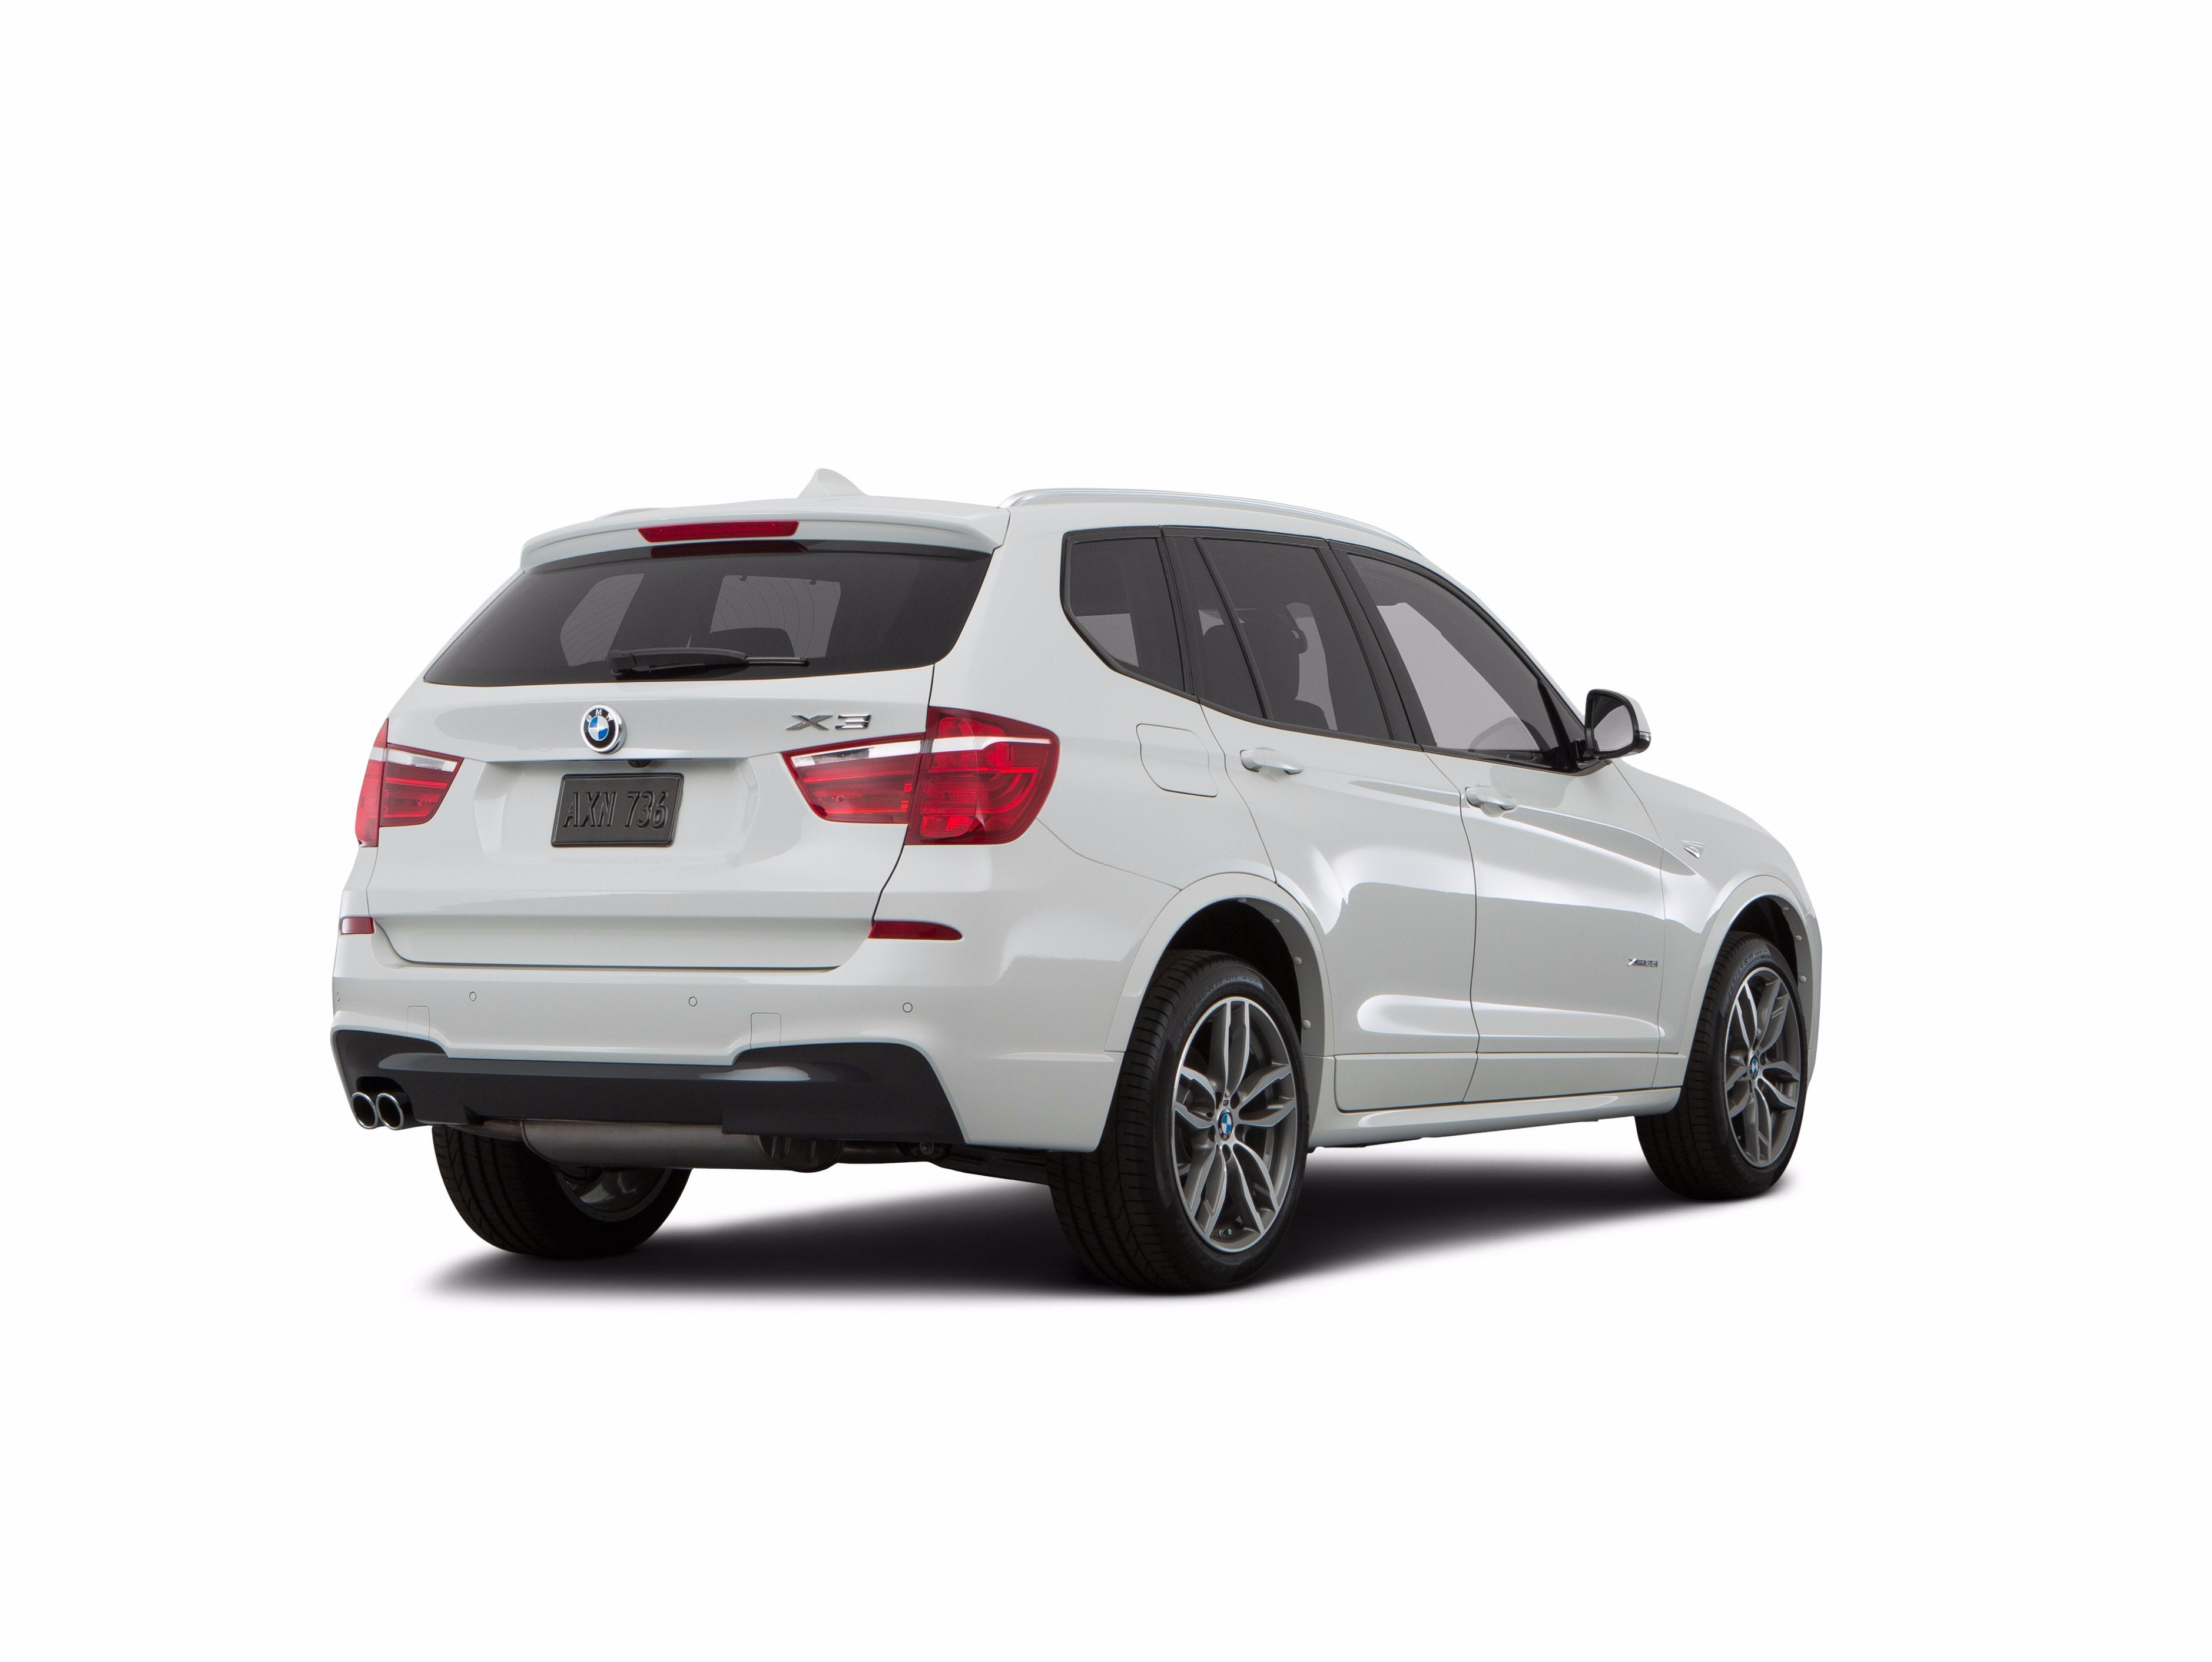 Trailer Hitch for BMW X4 | for Model (F26) | and Year 2015-2018 | by Stealth Hitches